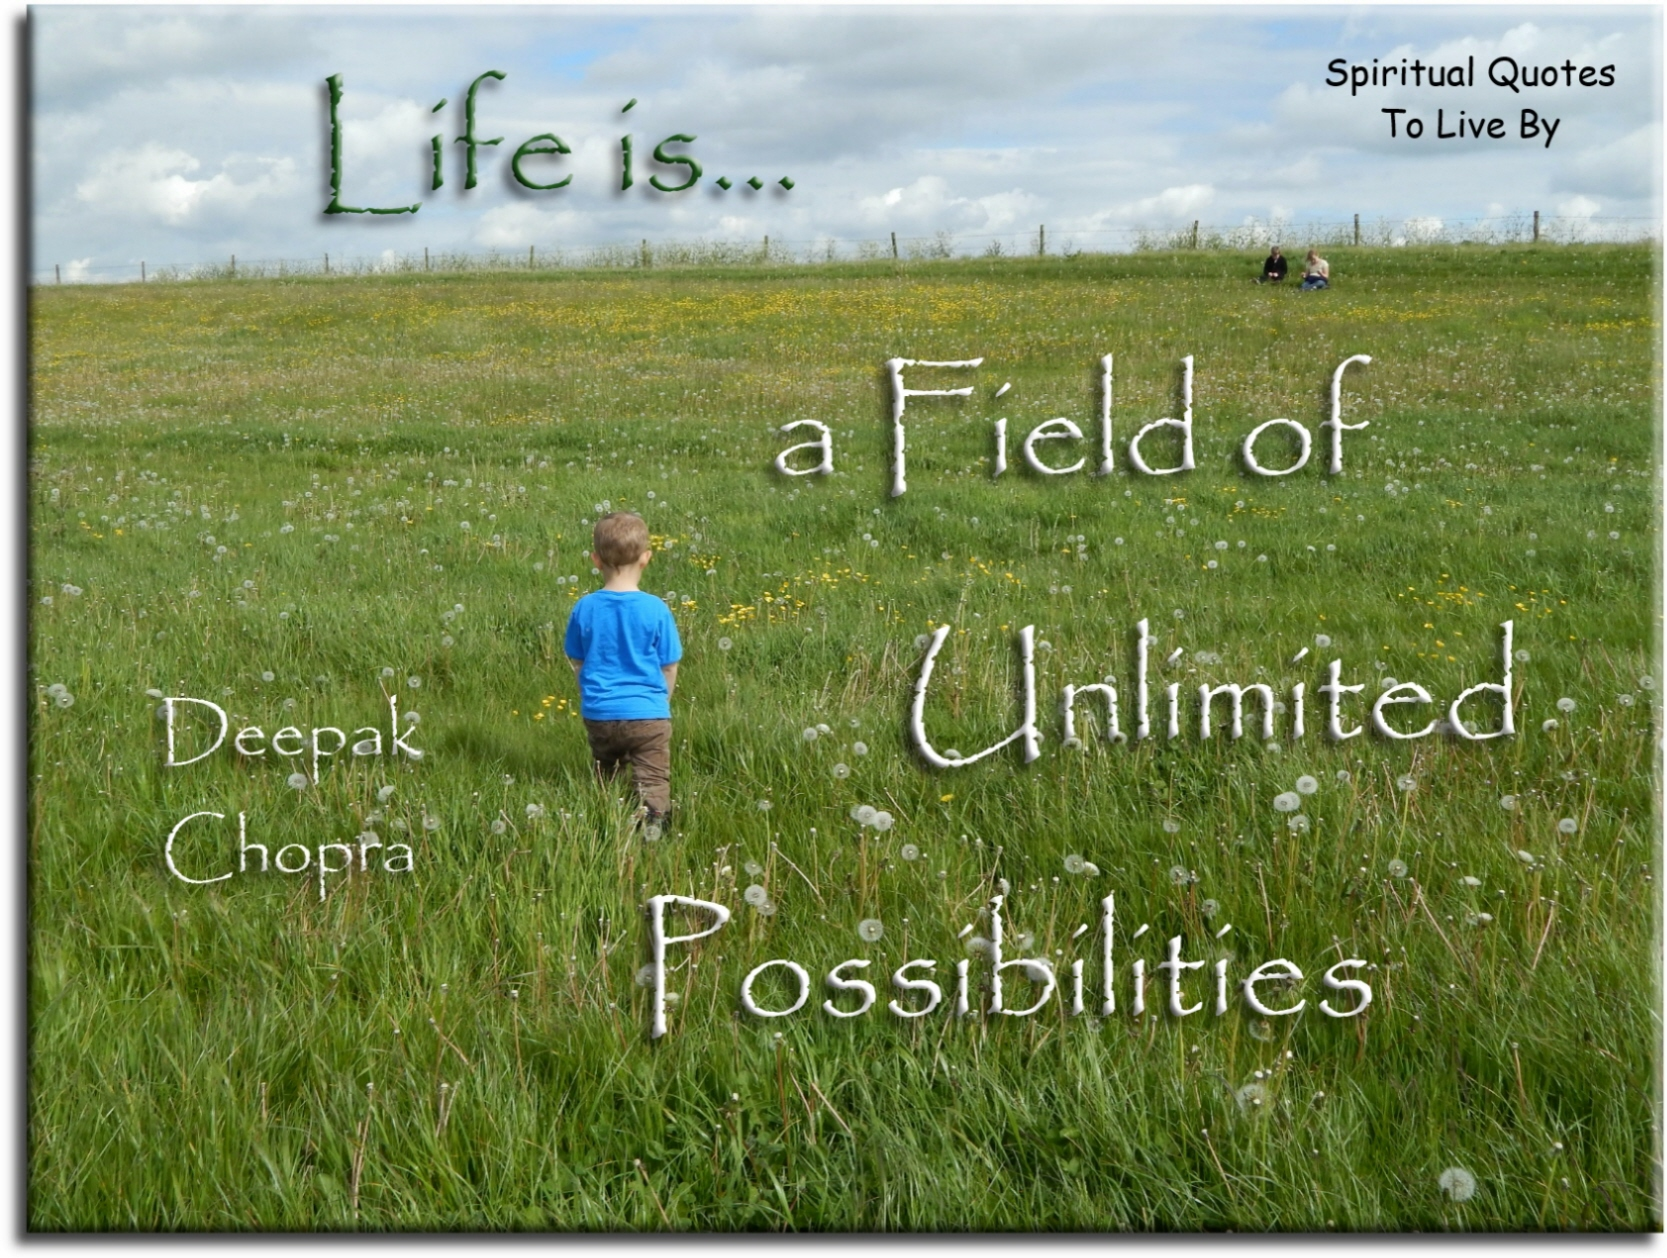 Life is a field of unlimited possibilities - Deepak Chopra - Spiritual Quotes To Live By